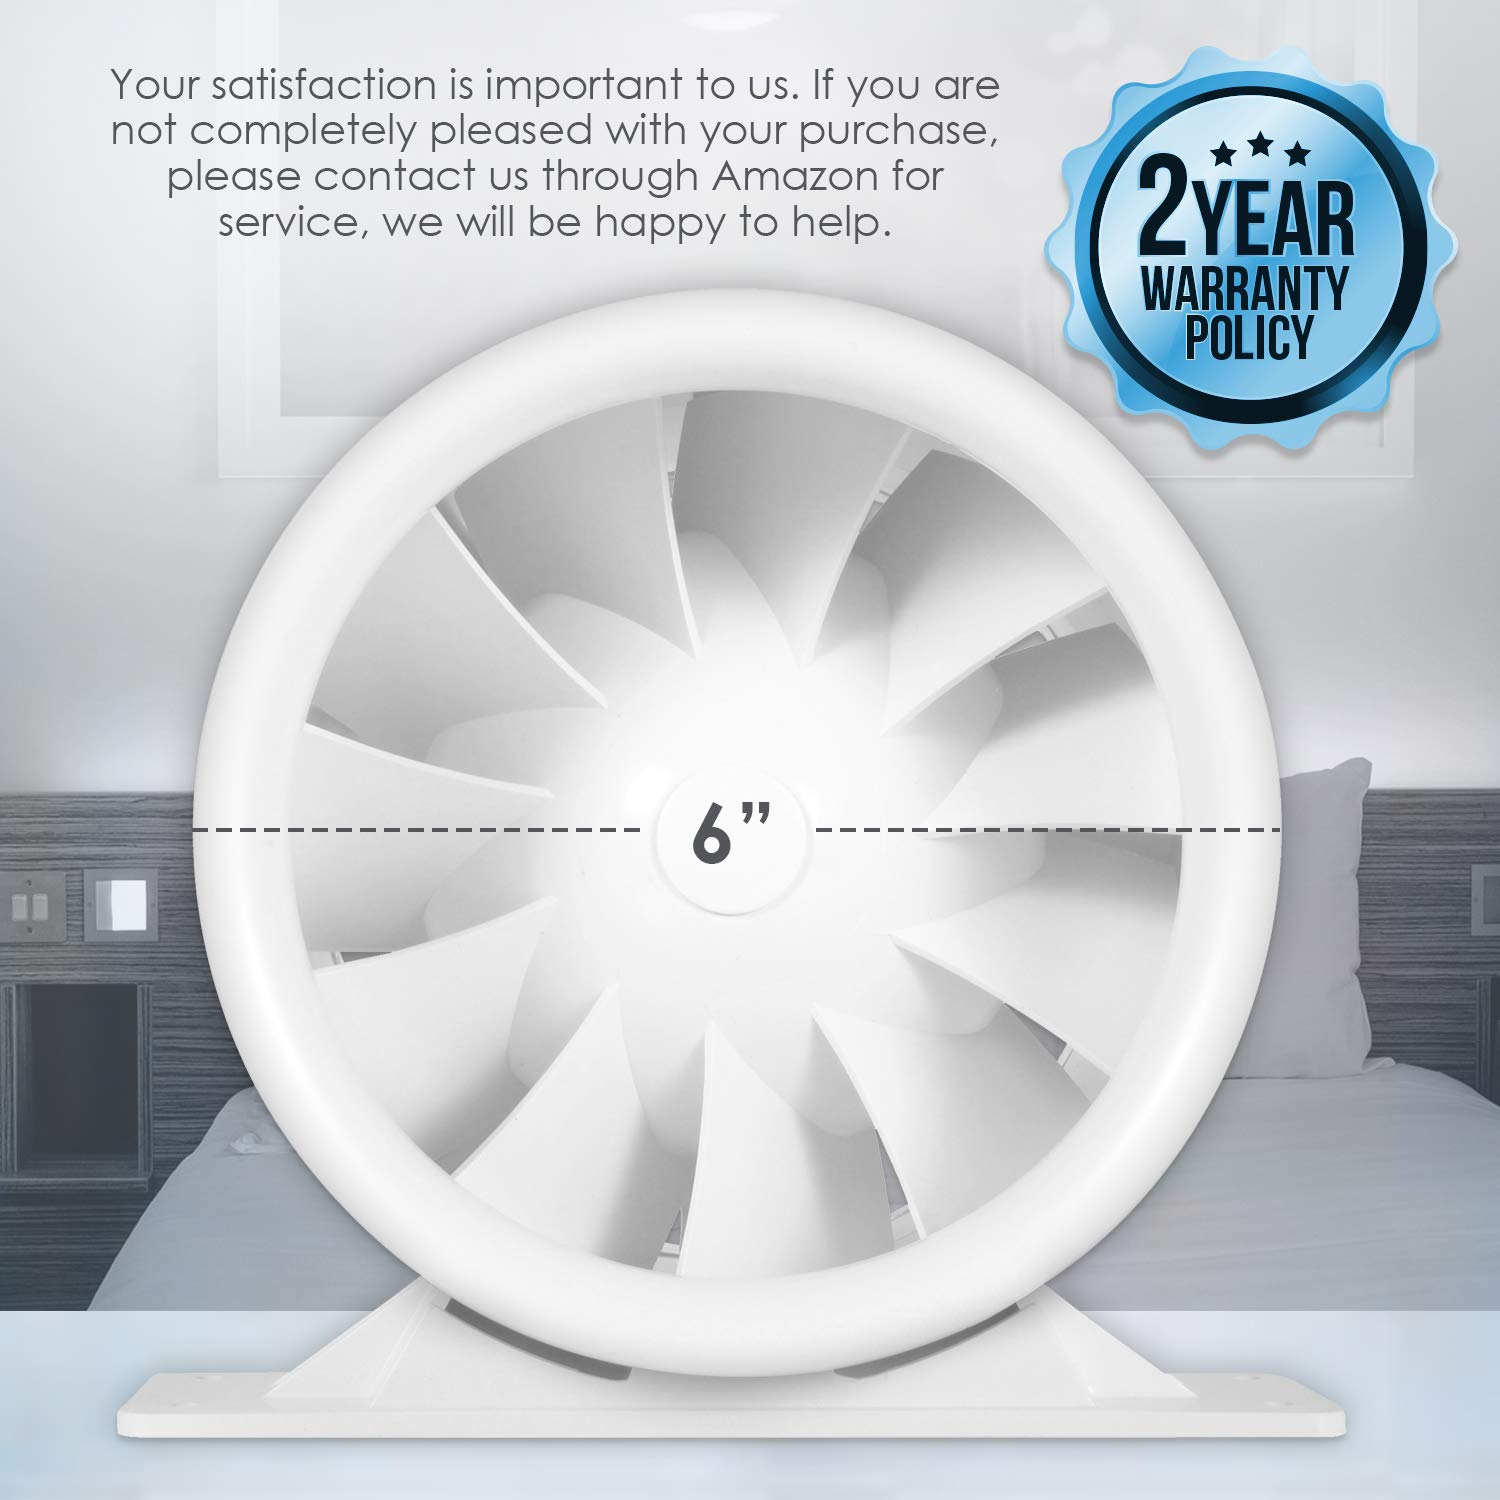 188 CFM 6 Silent Inline Duct Fan 26W Quiet Mixed-Flow Energy Efficient Blower for Air Circulation in Ducting Vents Grow Tents